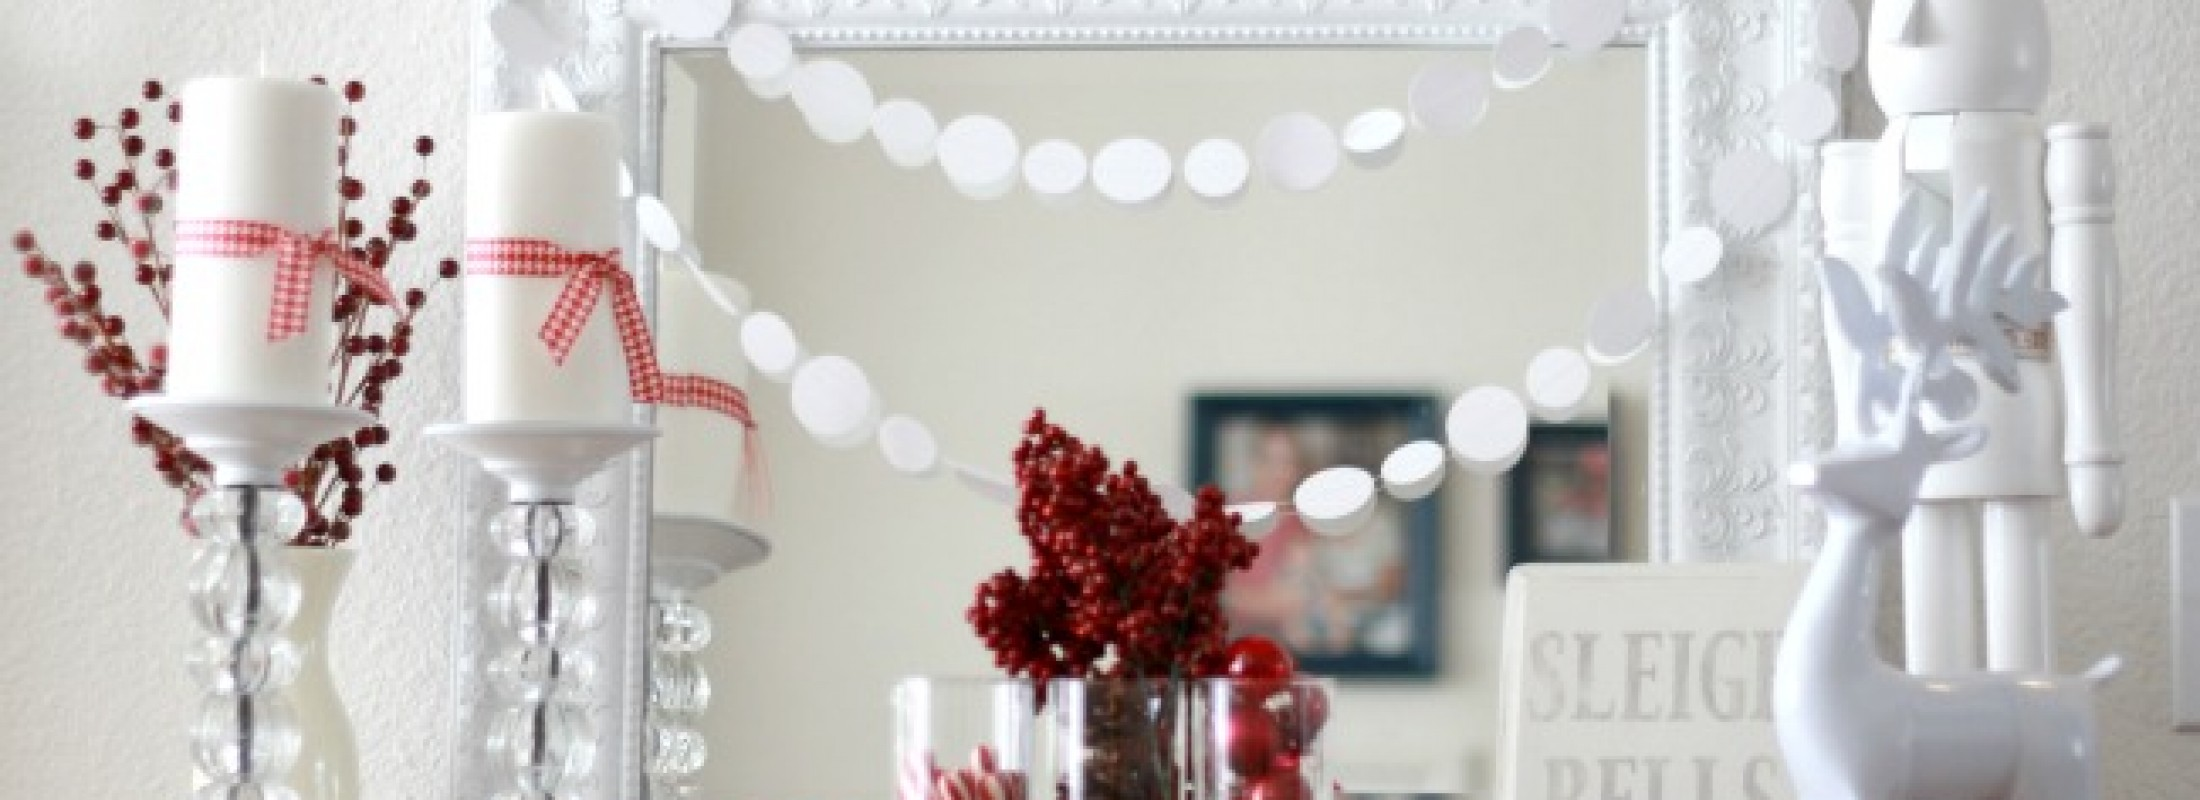 red and white christmas decorations photo credit making home base - Winter Wonderland Christmas Decorating Ideas